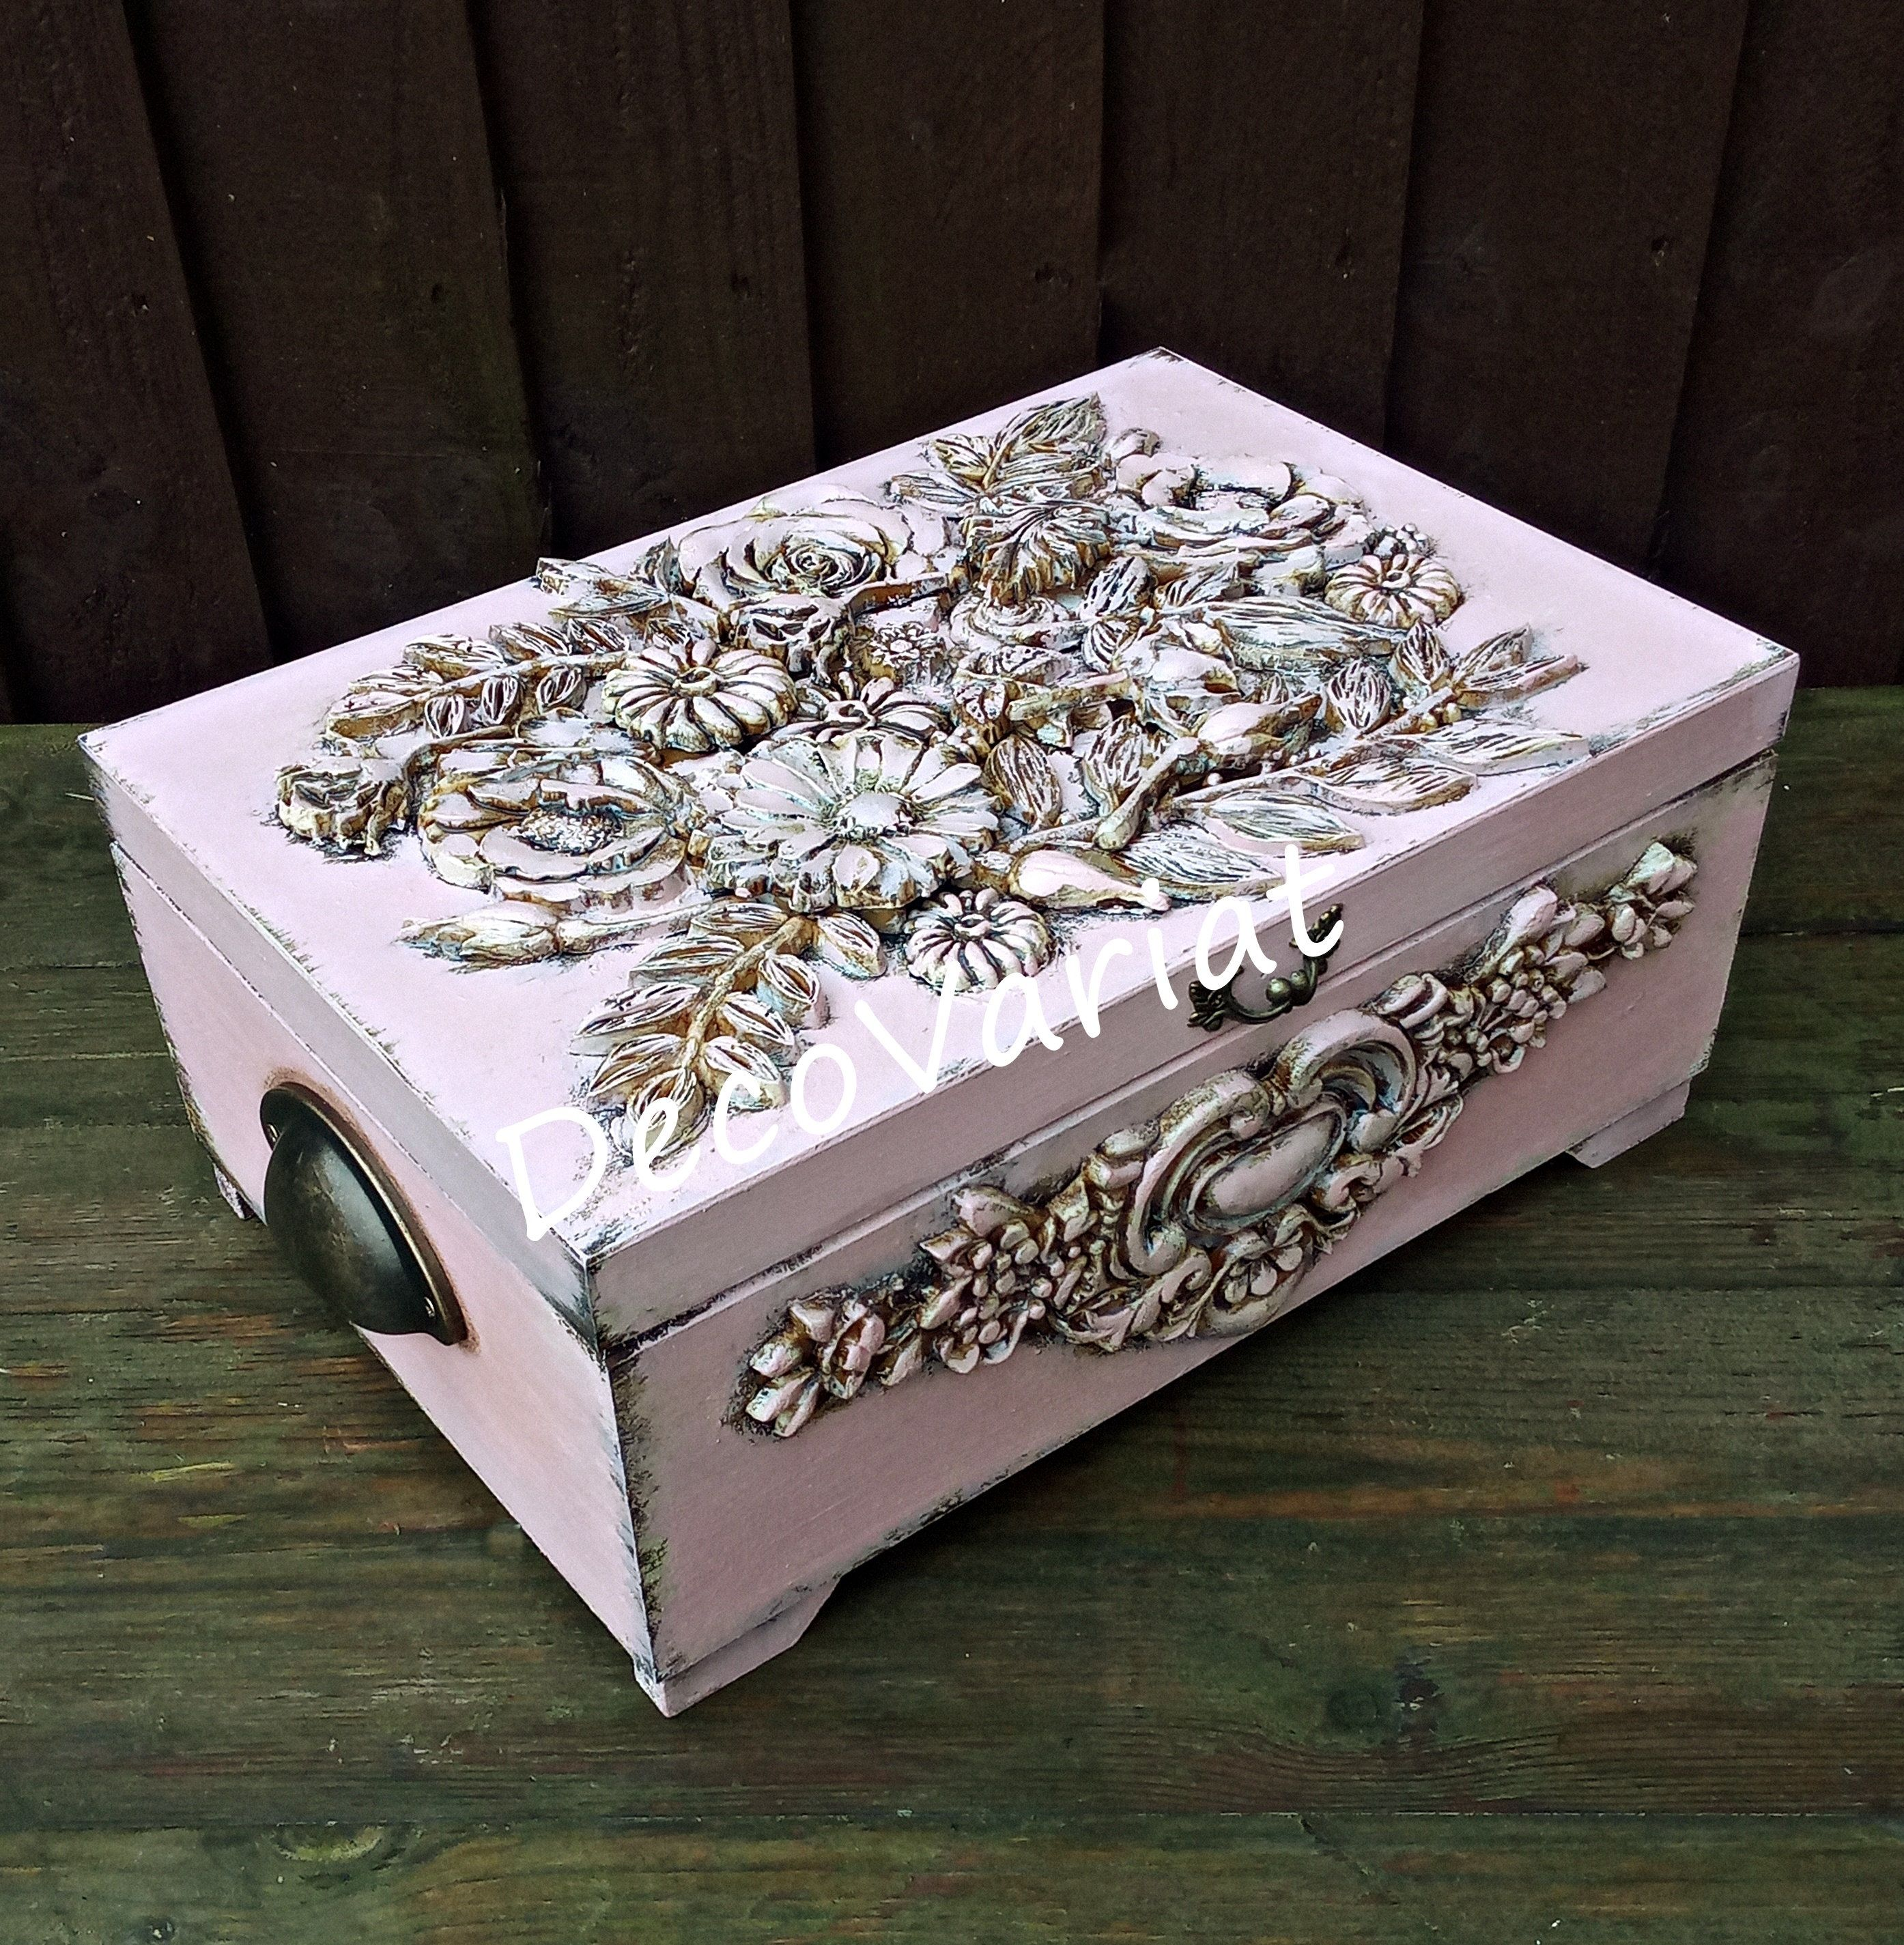 Photo of large jewellery box, jewellery organizer, moulds decor, shabby chic box